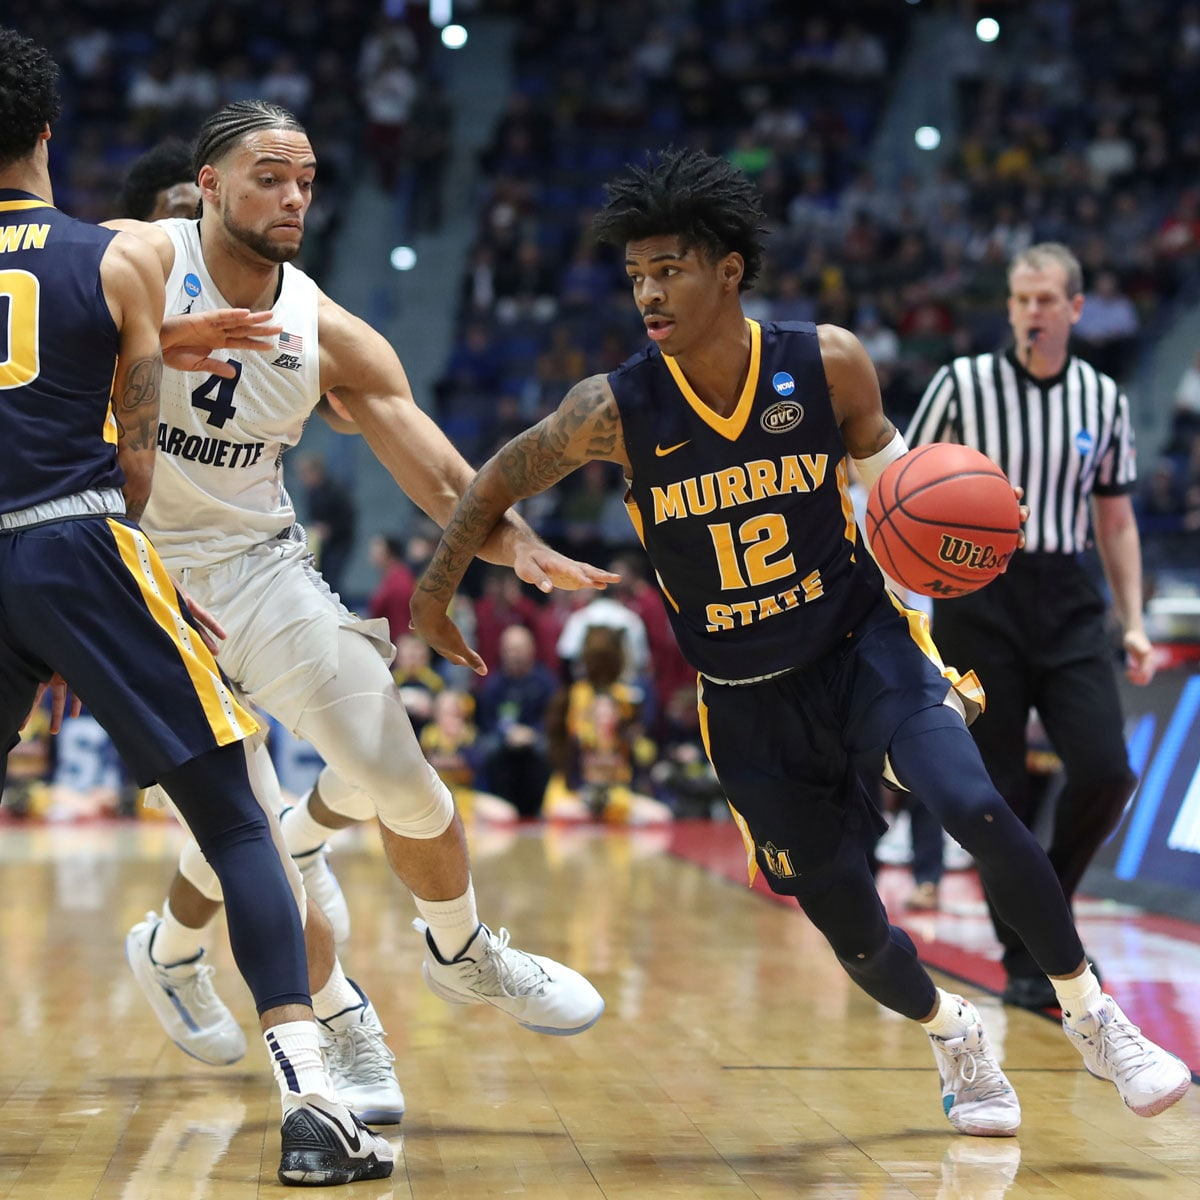 Ja Morant #12 of the Murray State Racers drives past Theo John #4 of the Marquette Golden Eagles during their first round game of the 2019 NCAA Men's Basketball Tournament at XL Center on March 21, 2019 in Hartford, Connecticut.